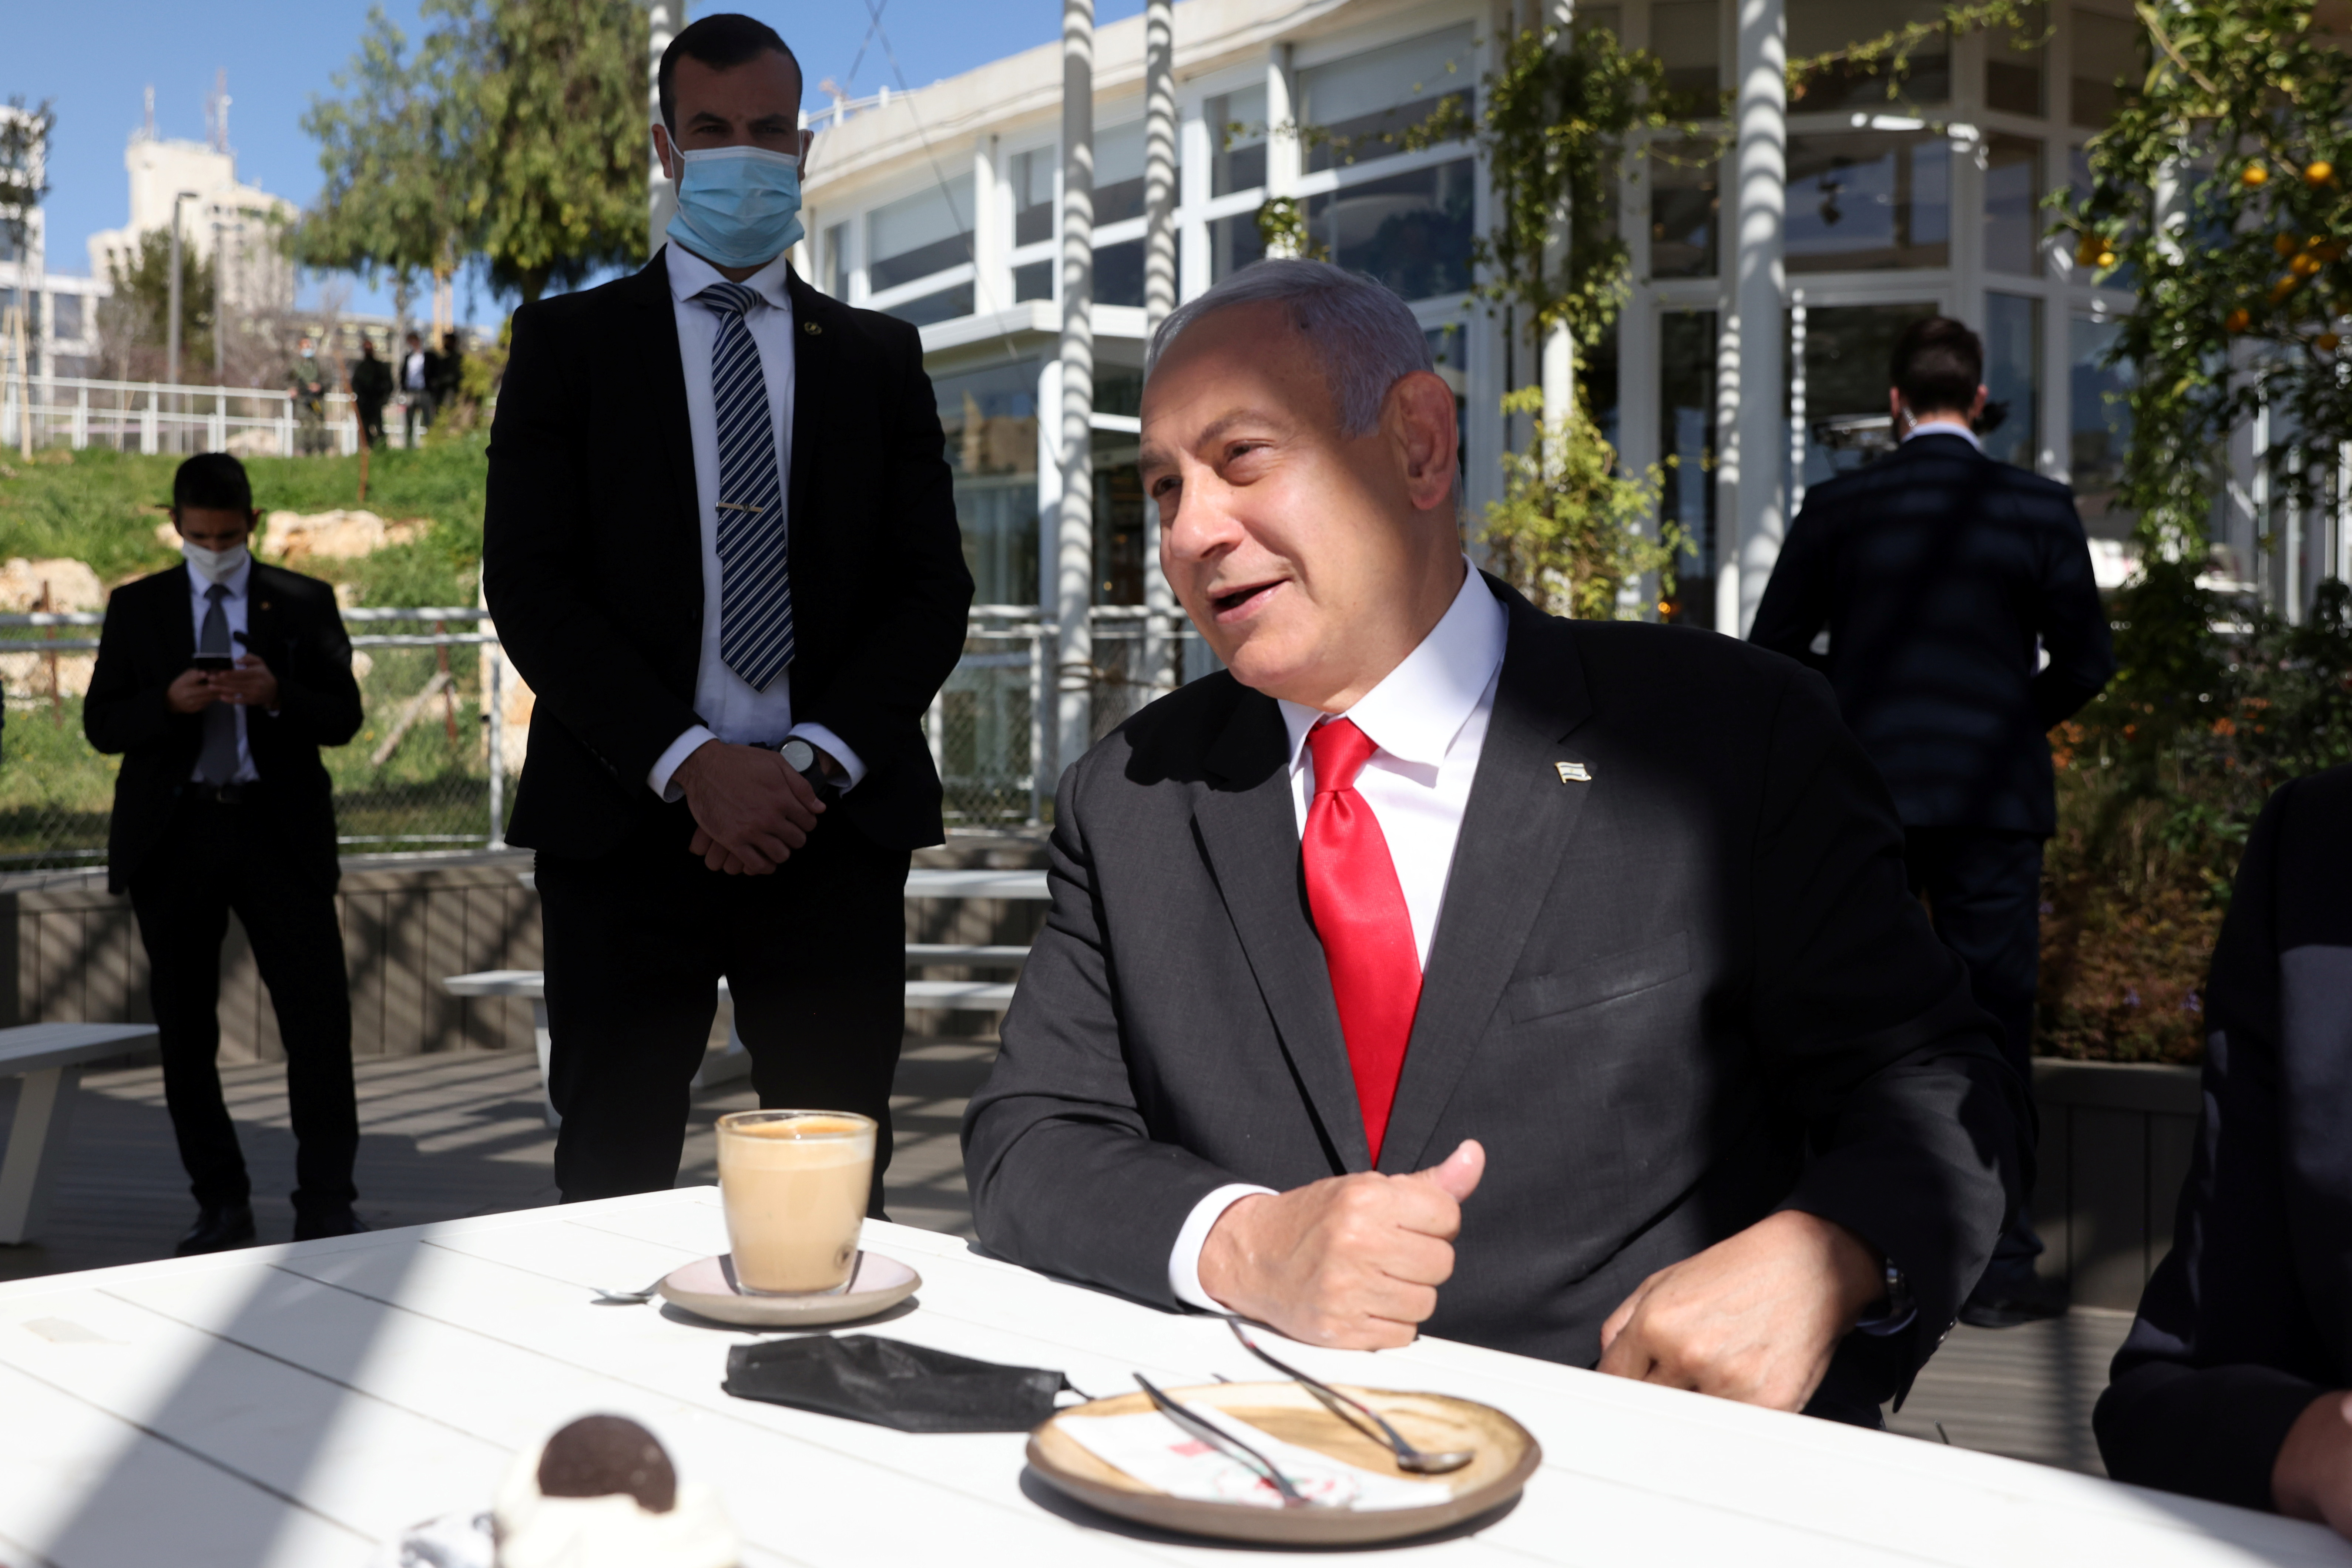 Israel Prime Minister, Benjamin Netanyahu gestures as he sits in a cafe while Israel further eases coronavirus disease (COVID-19) restrictions in Jerusalem March 7, 2021 REUTERS/ Ronen Zvulun